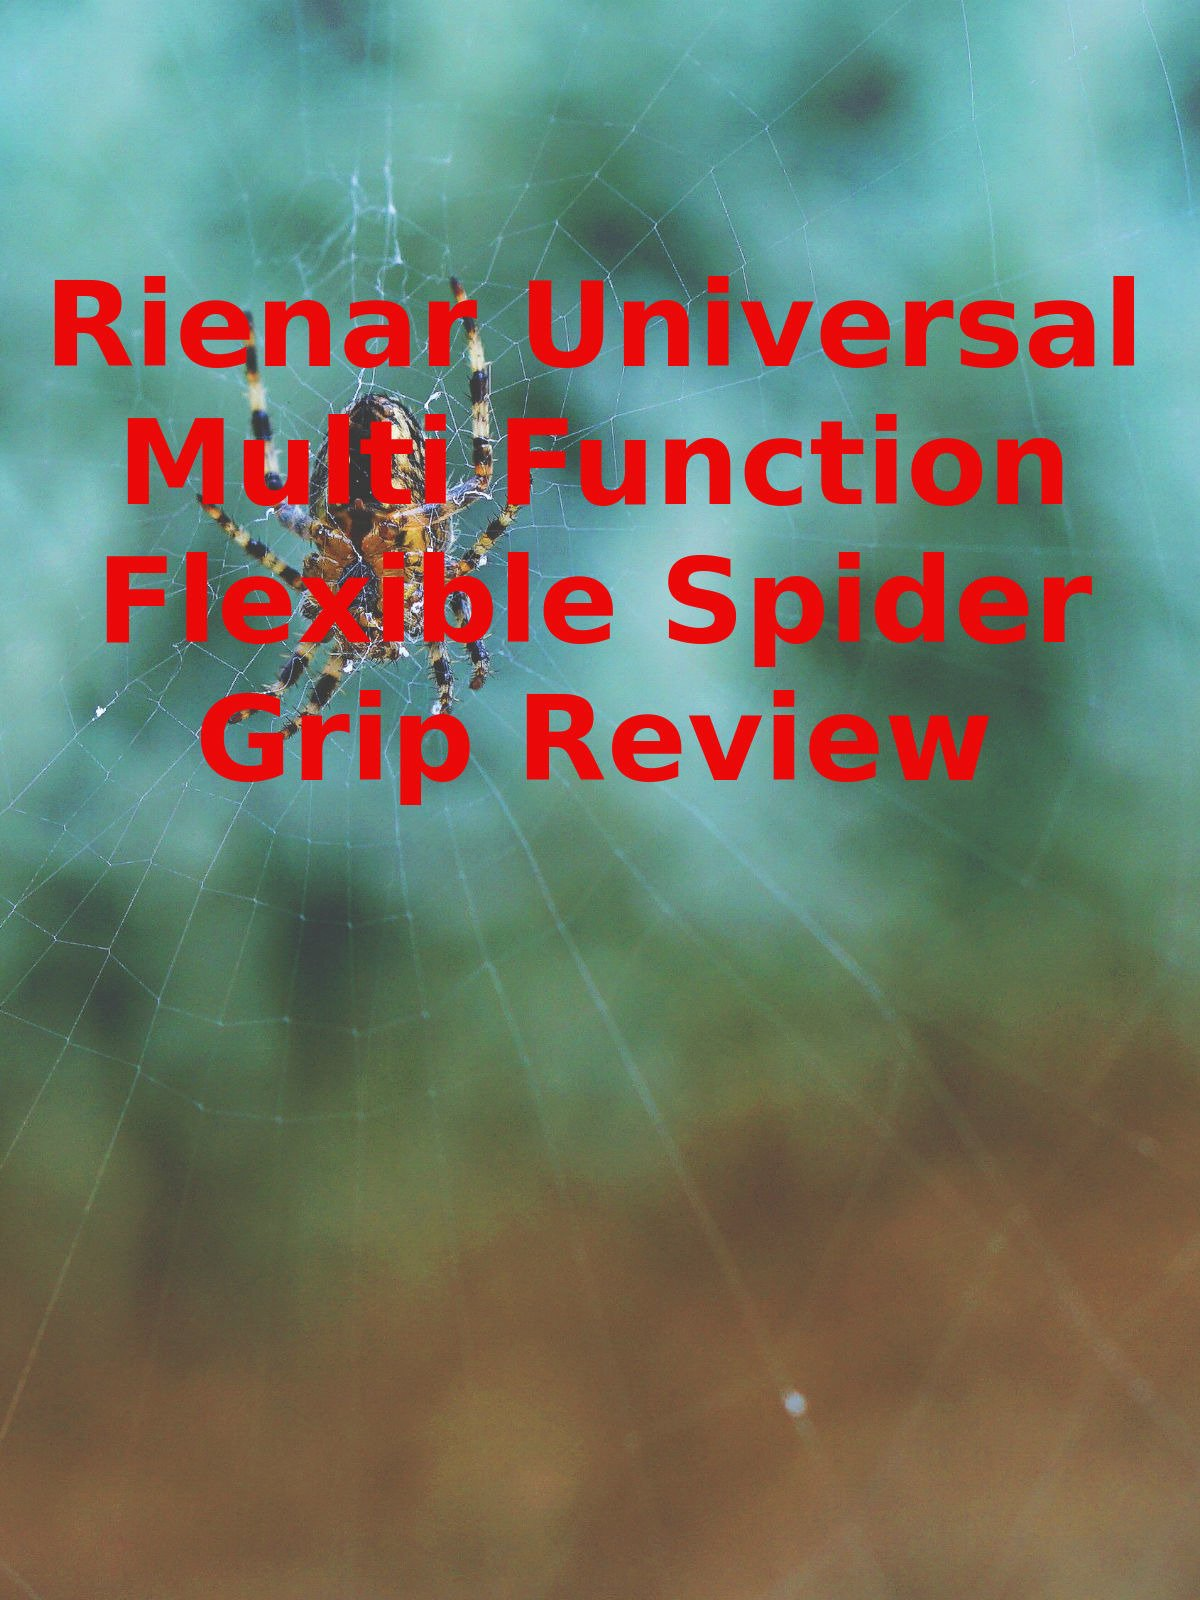 Review: Rienar Universal Multi Function Flexible Spider Grip Review on Amazon Prime Video UK